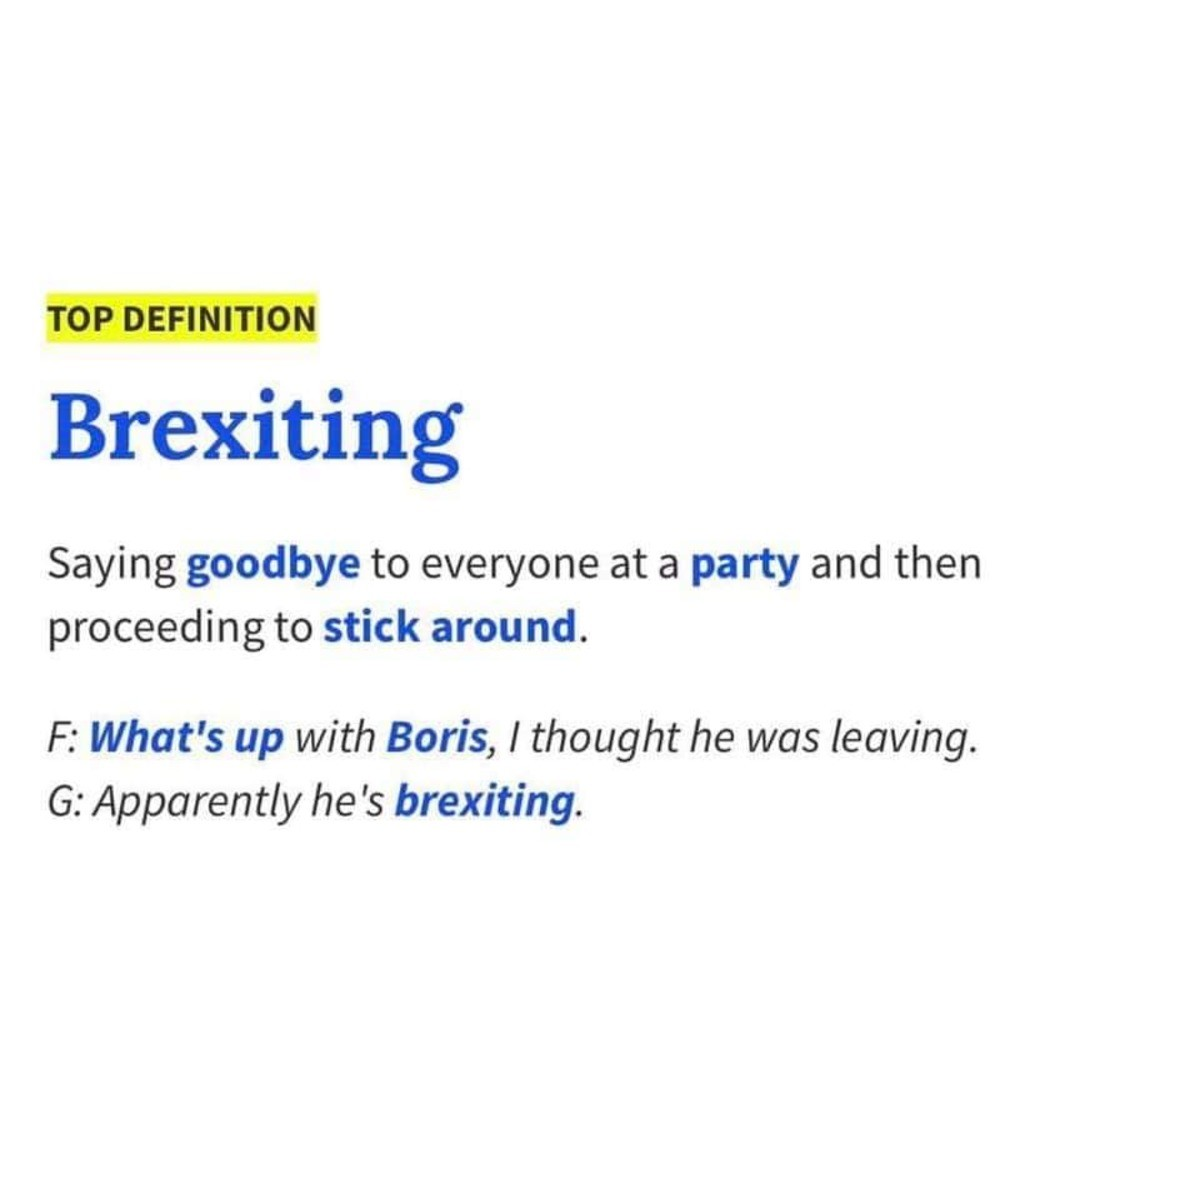 Brexiting. .. A better description would be, saying you're going to leave and your friends and people you dislike keep getting in your way as you try to leave.